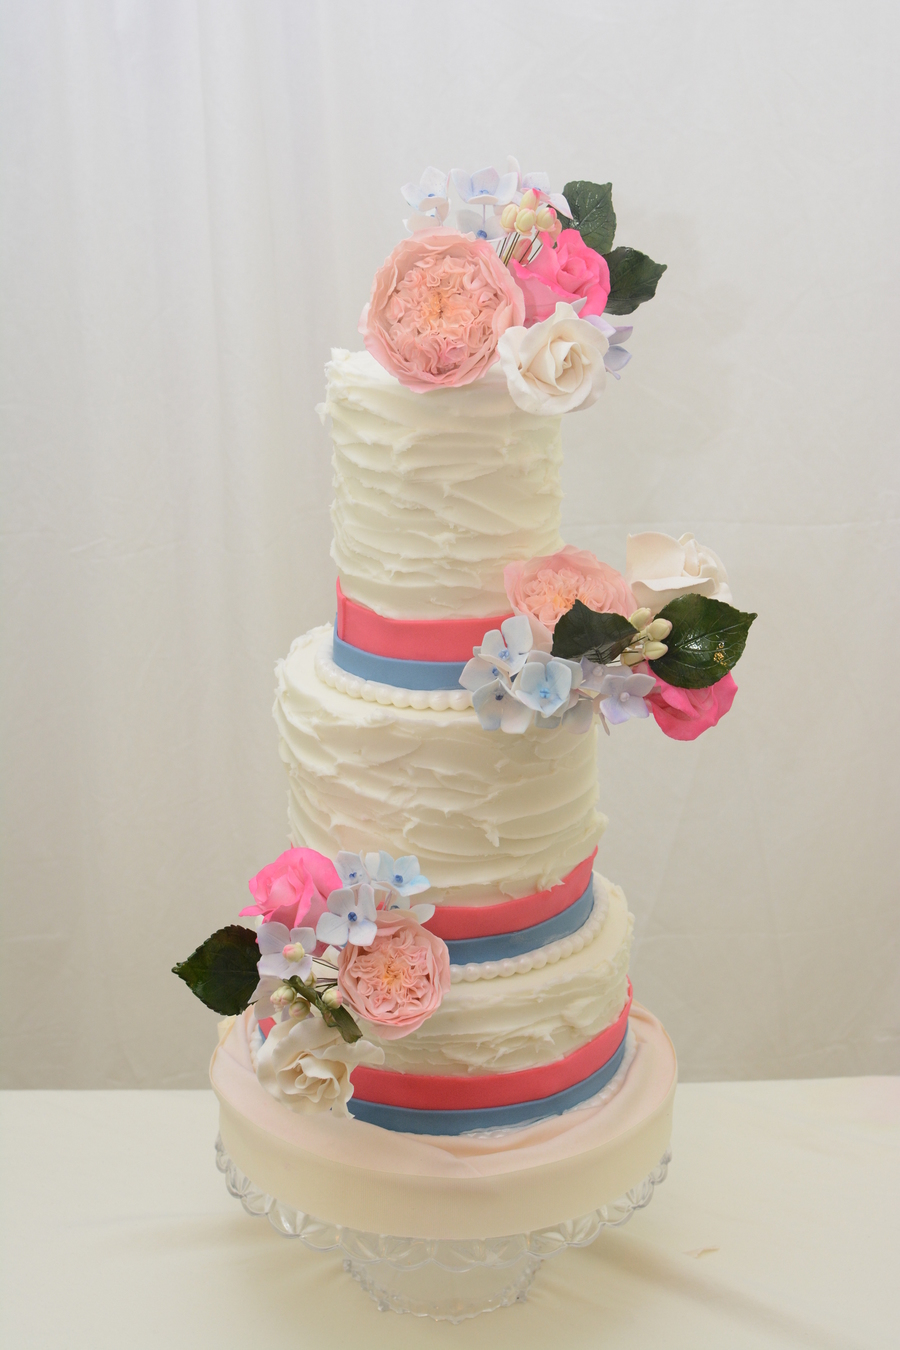 86 And 4 With A Rustic Finish Fondant Accents And Sugar Hydrangea Rose And Sweet Juliet Rose on Cake Central